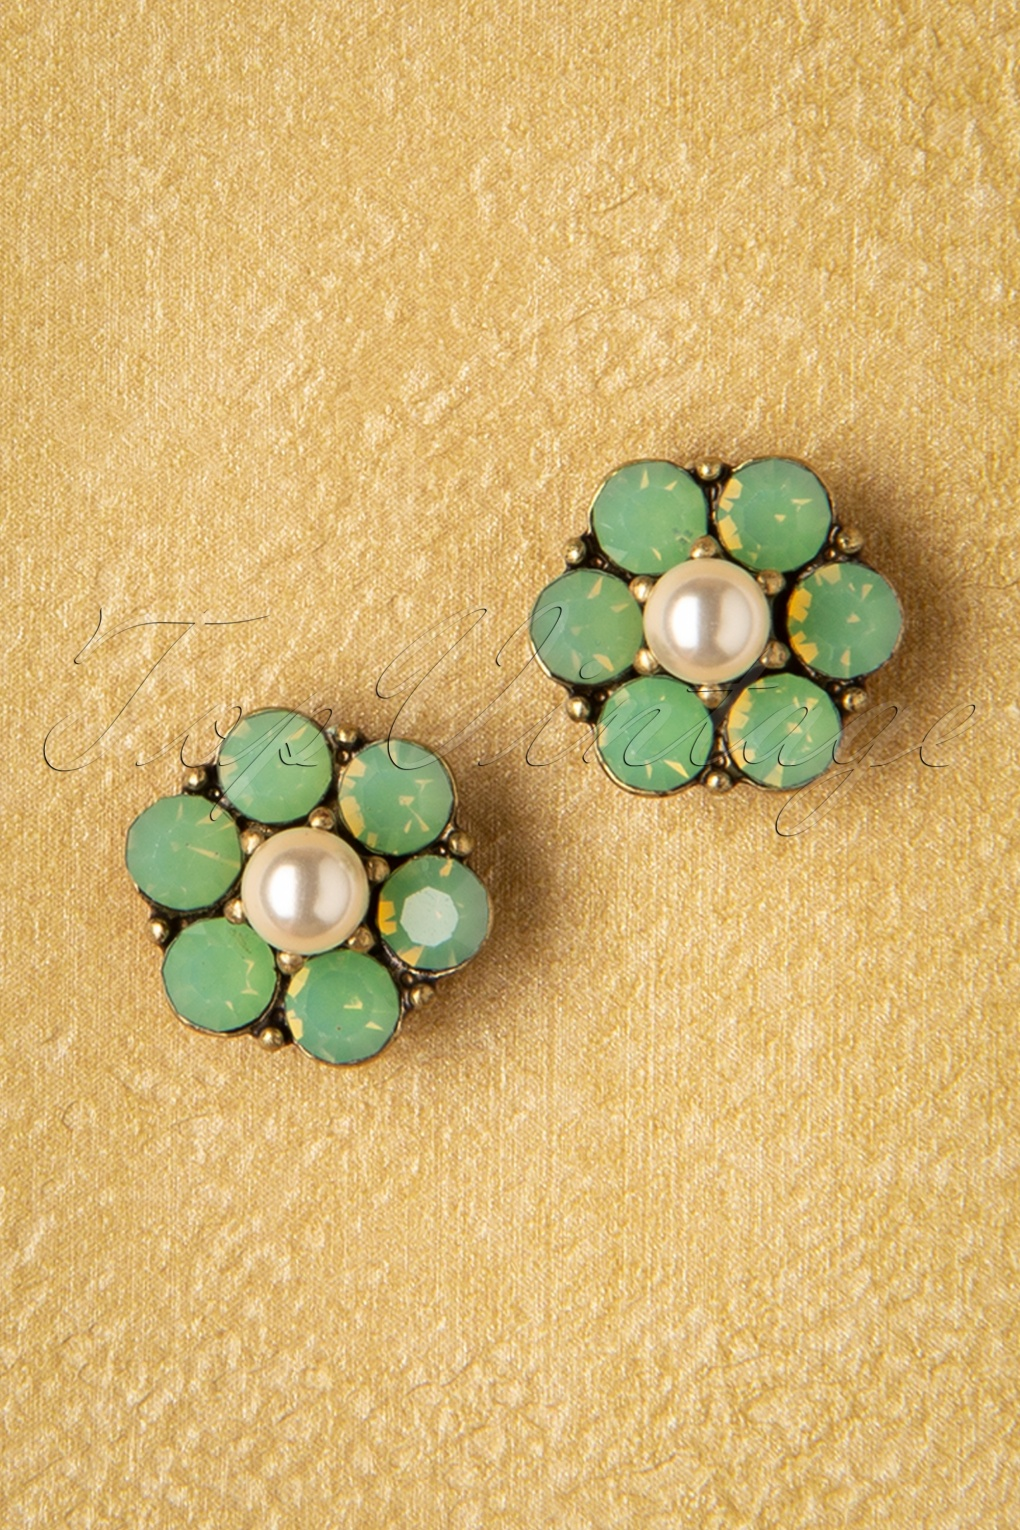 Vintage Style Jewelry, Retro Jewelry 20s Mini Crystal Flower Earstuds in Seafoam Green £13.29 AT vintagedancer.com